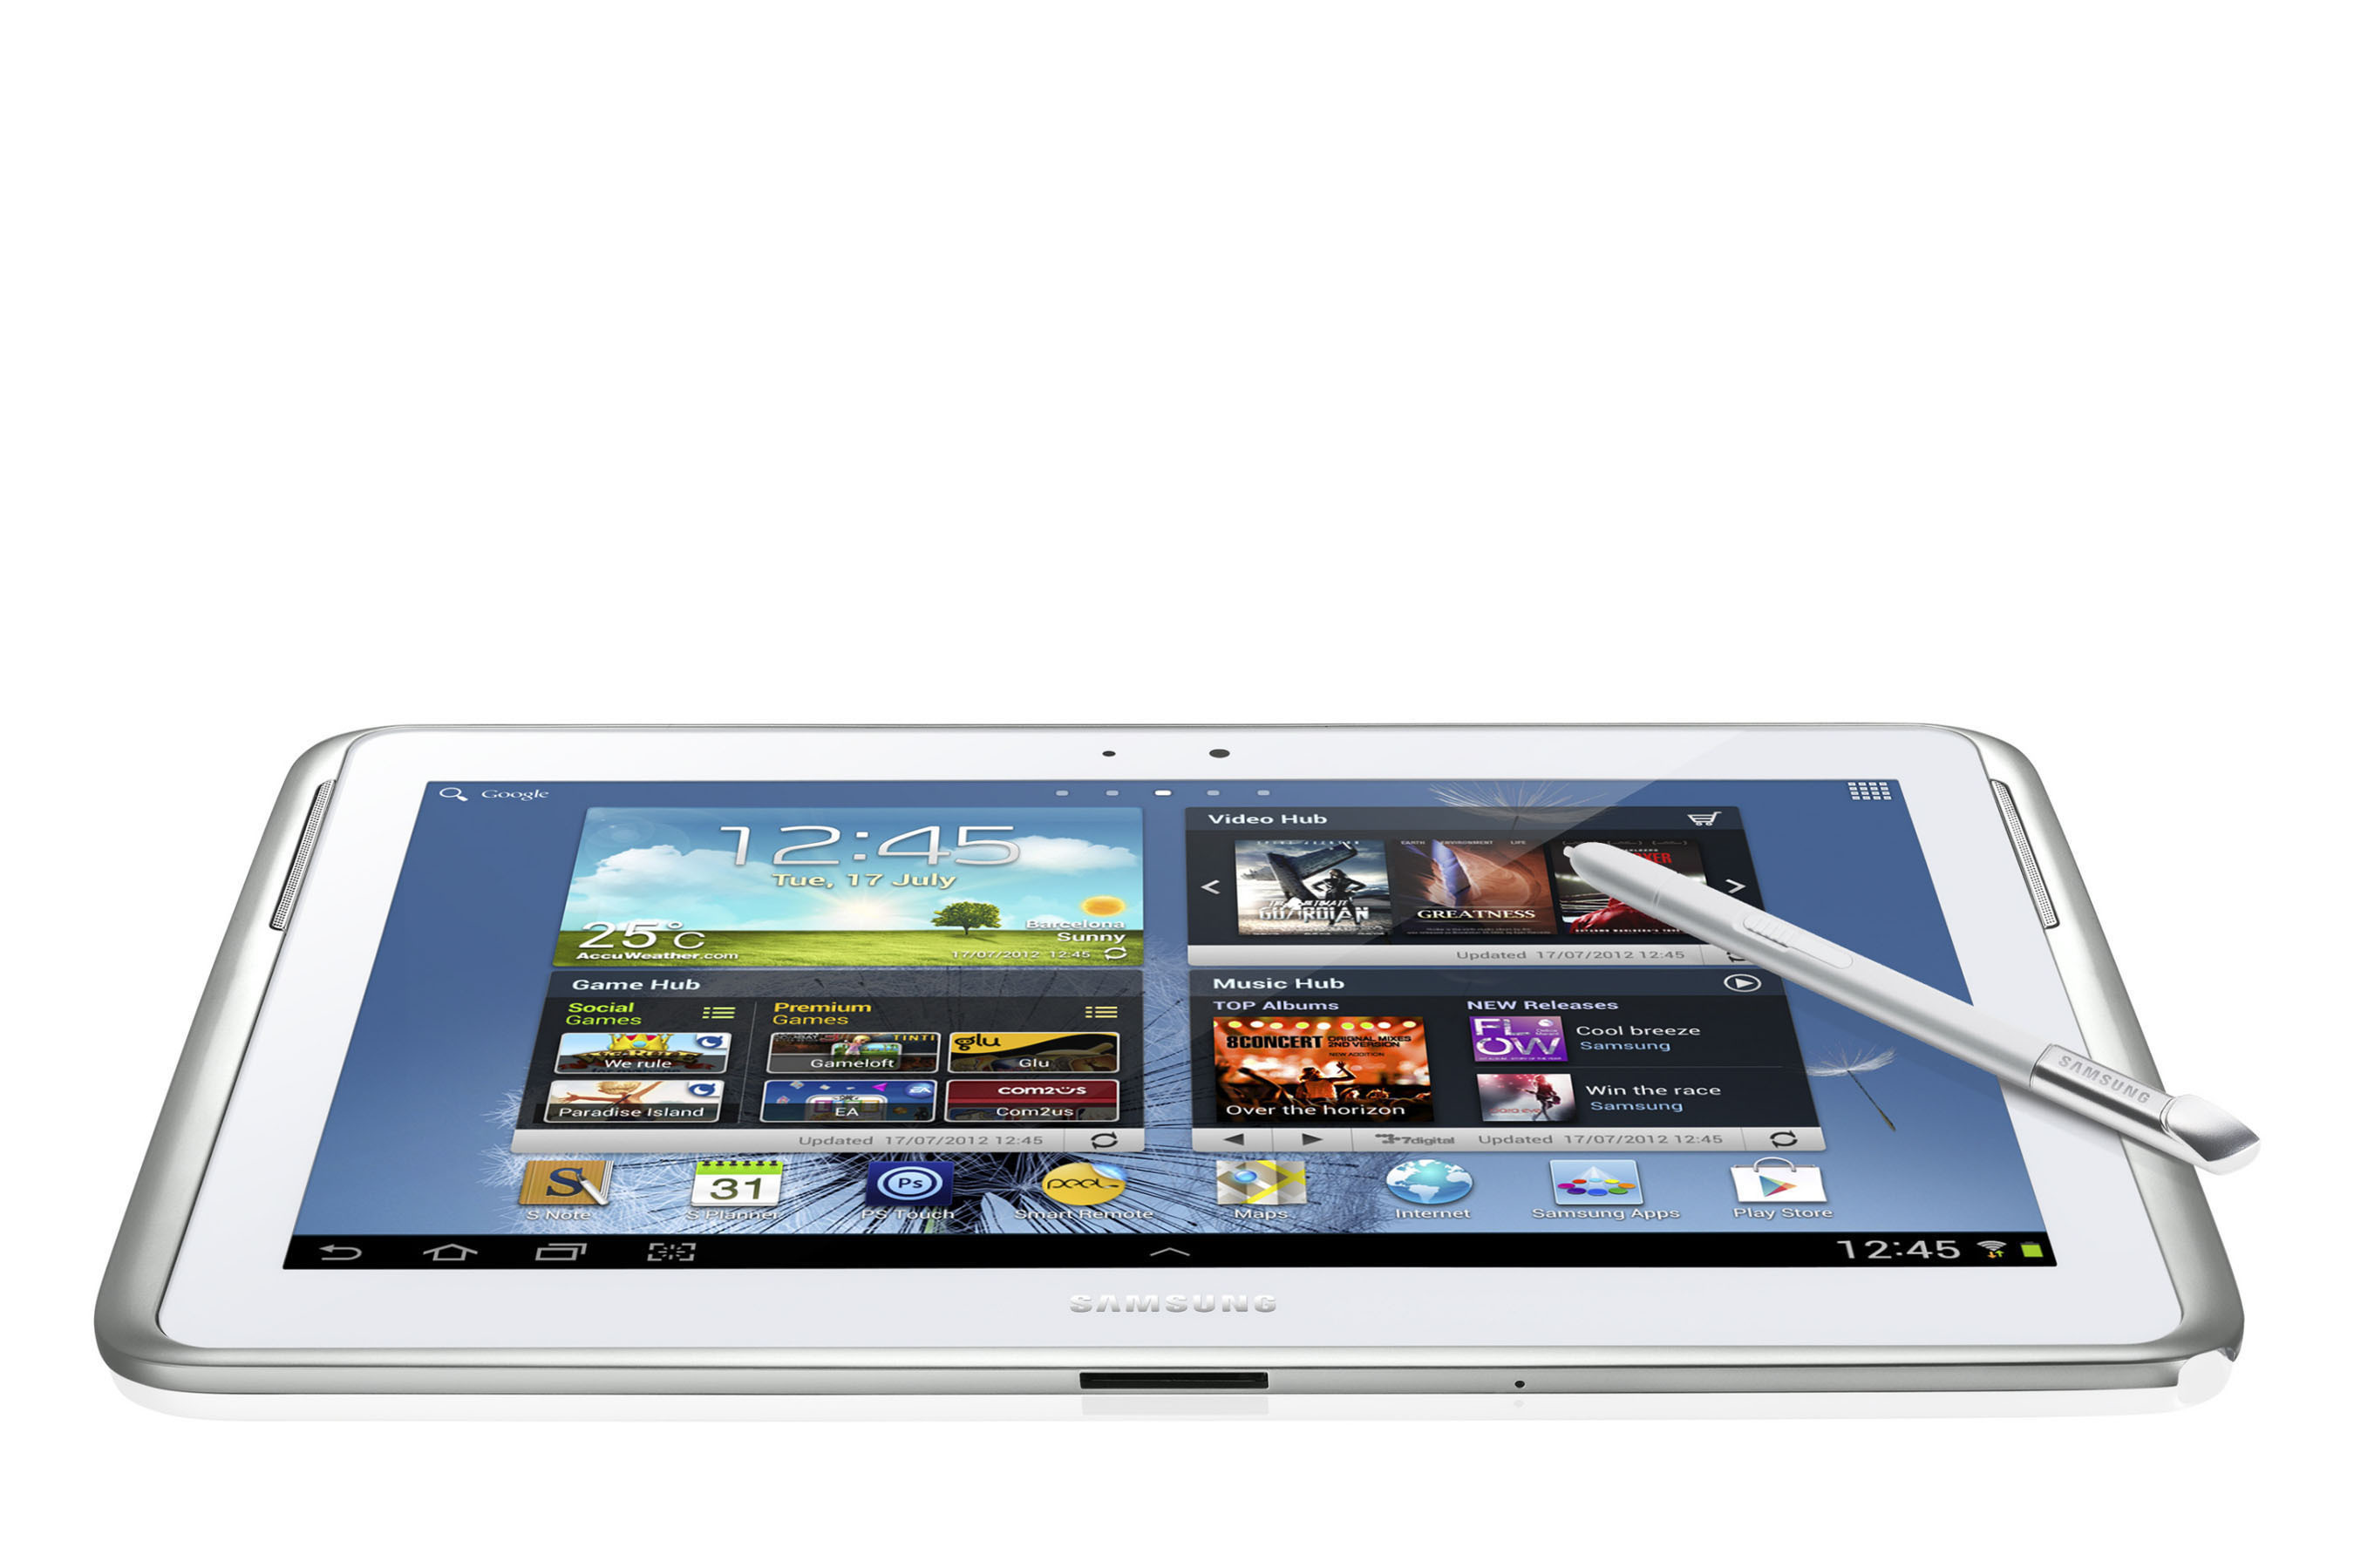 Nuovo tablet da 8 pollici Full HD per Samsung?